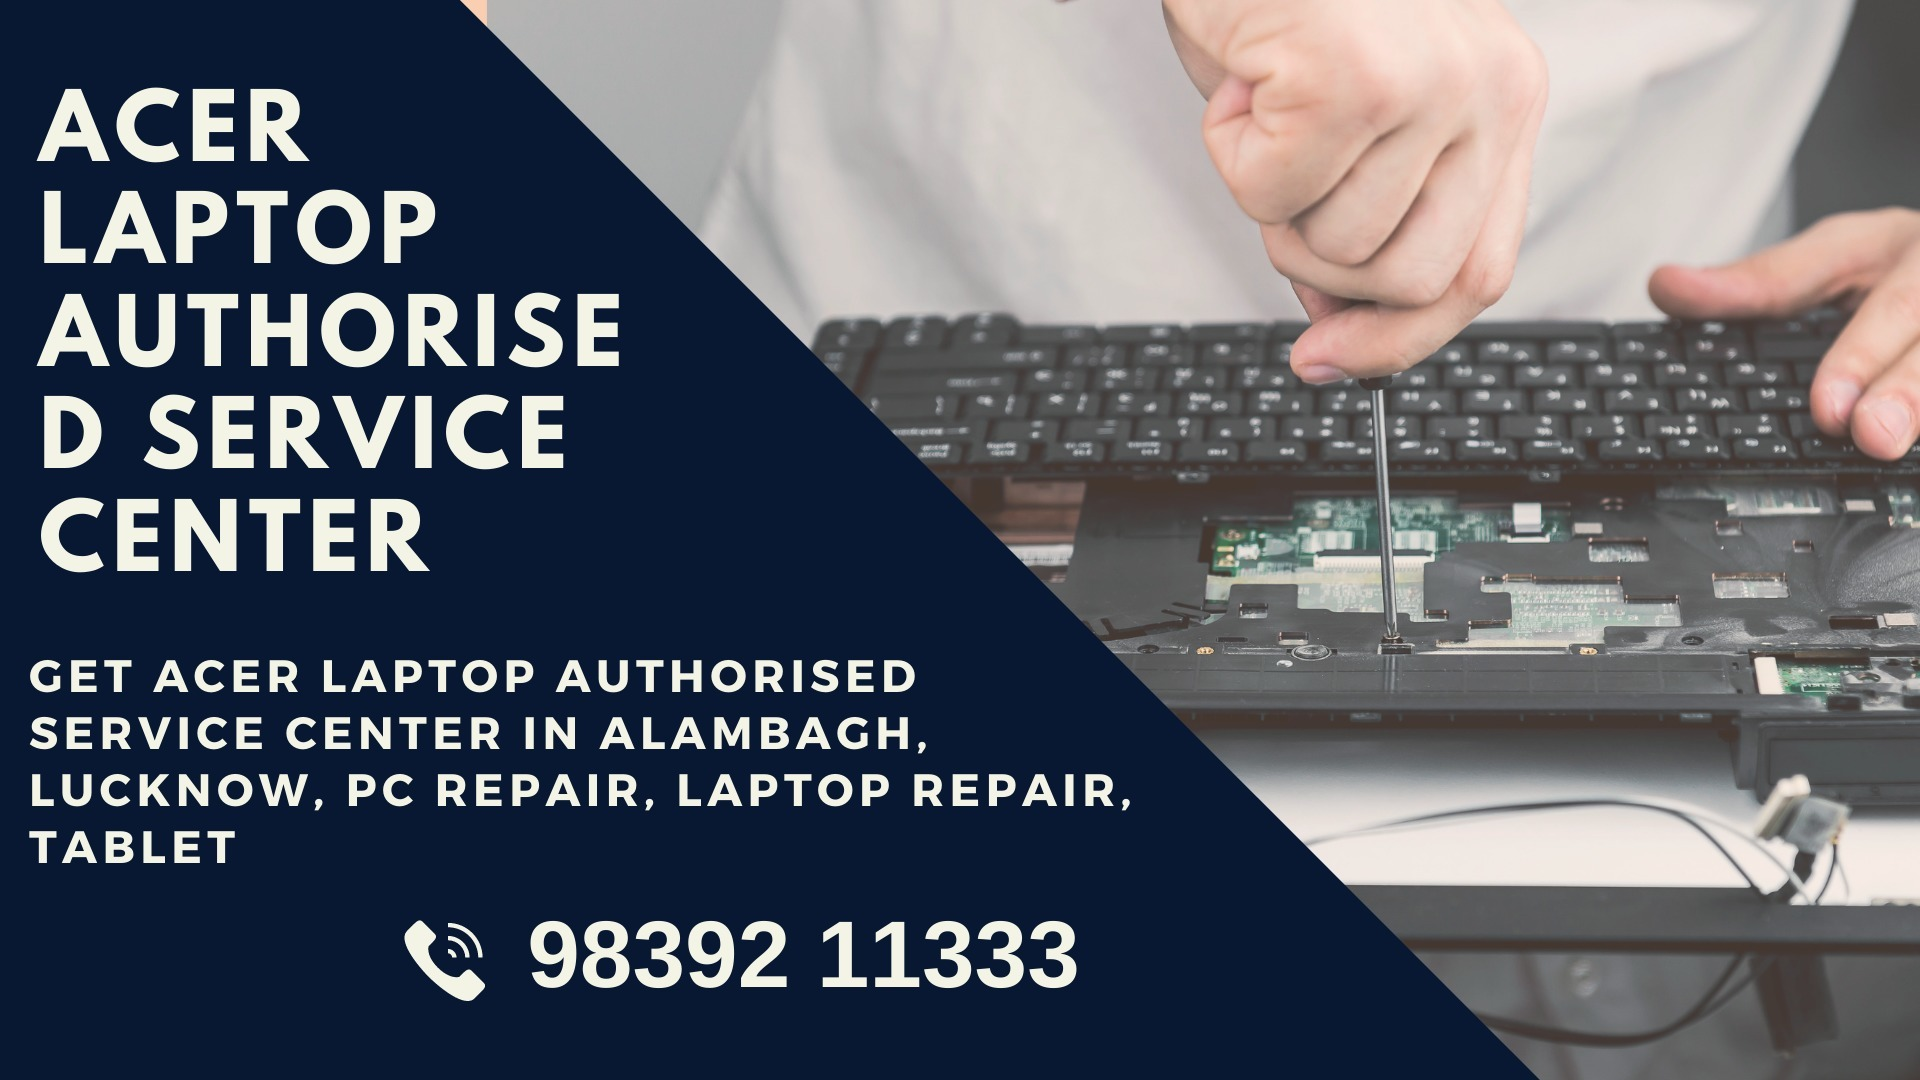 Acer Laptop Authorised Service Center (@acerlaptoplko) Cover Image